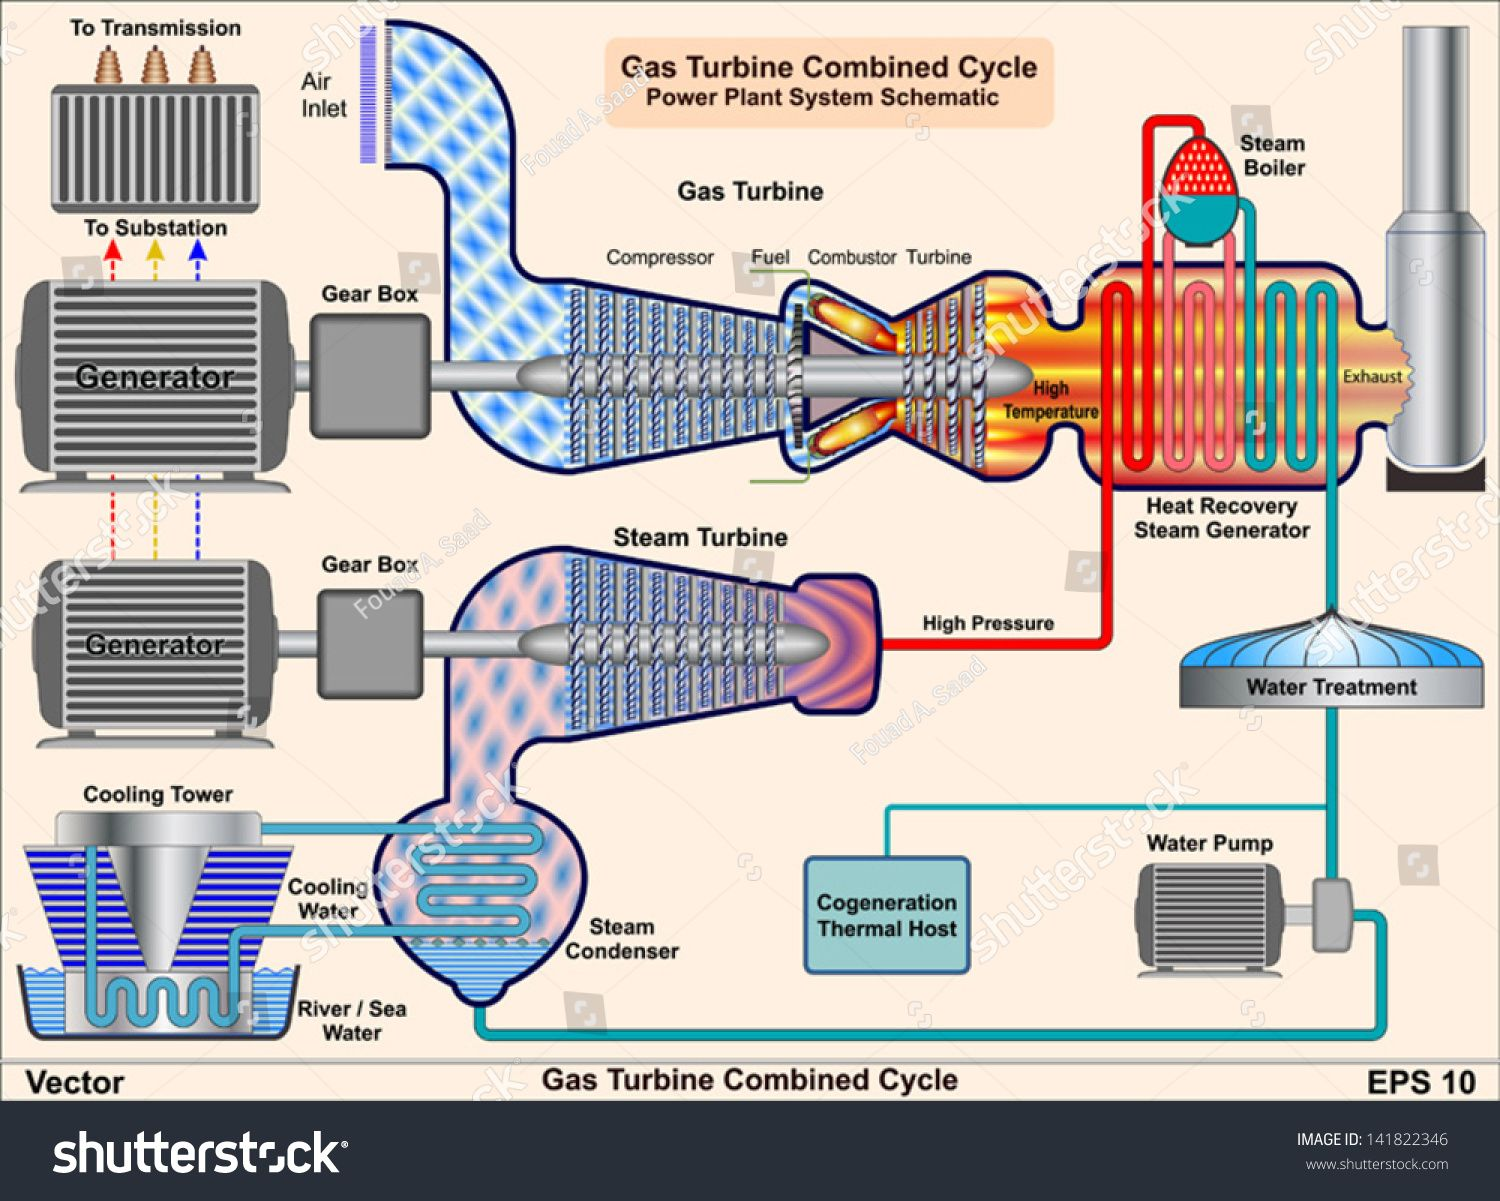 Gas Turbine Combined Cycle Power Plant System Schematic Gas Turbine Steam Turbine Power Plant